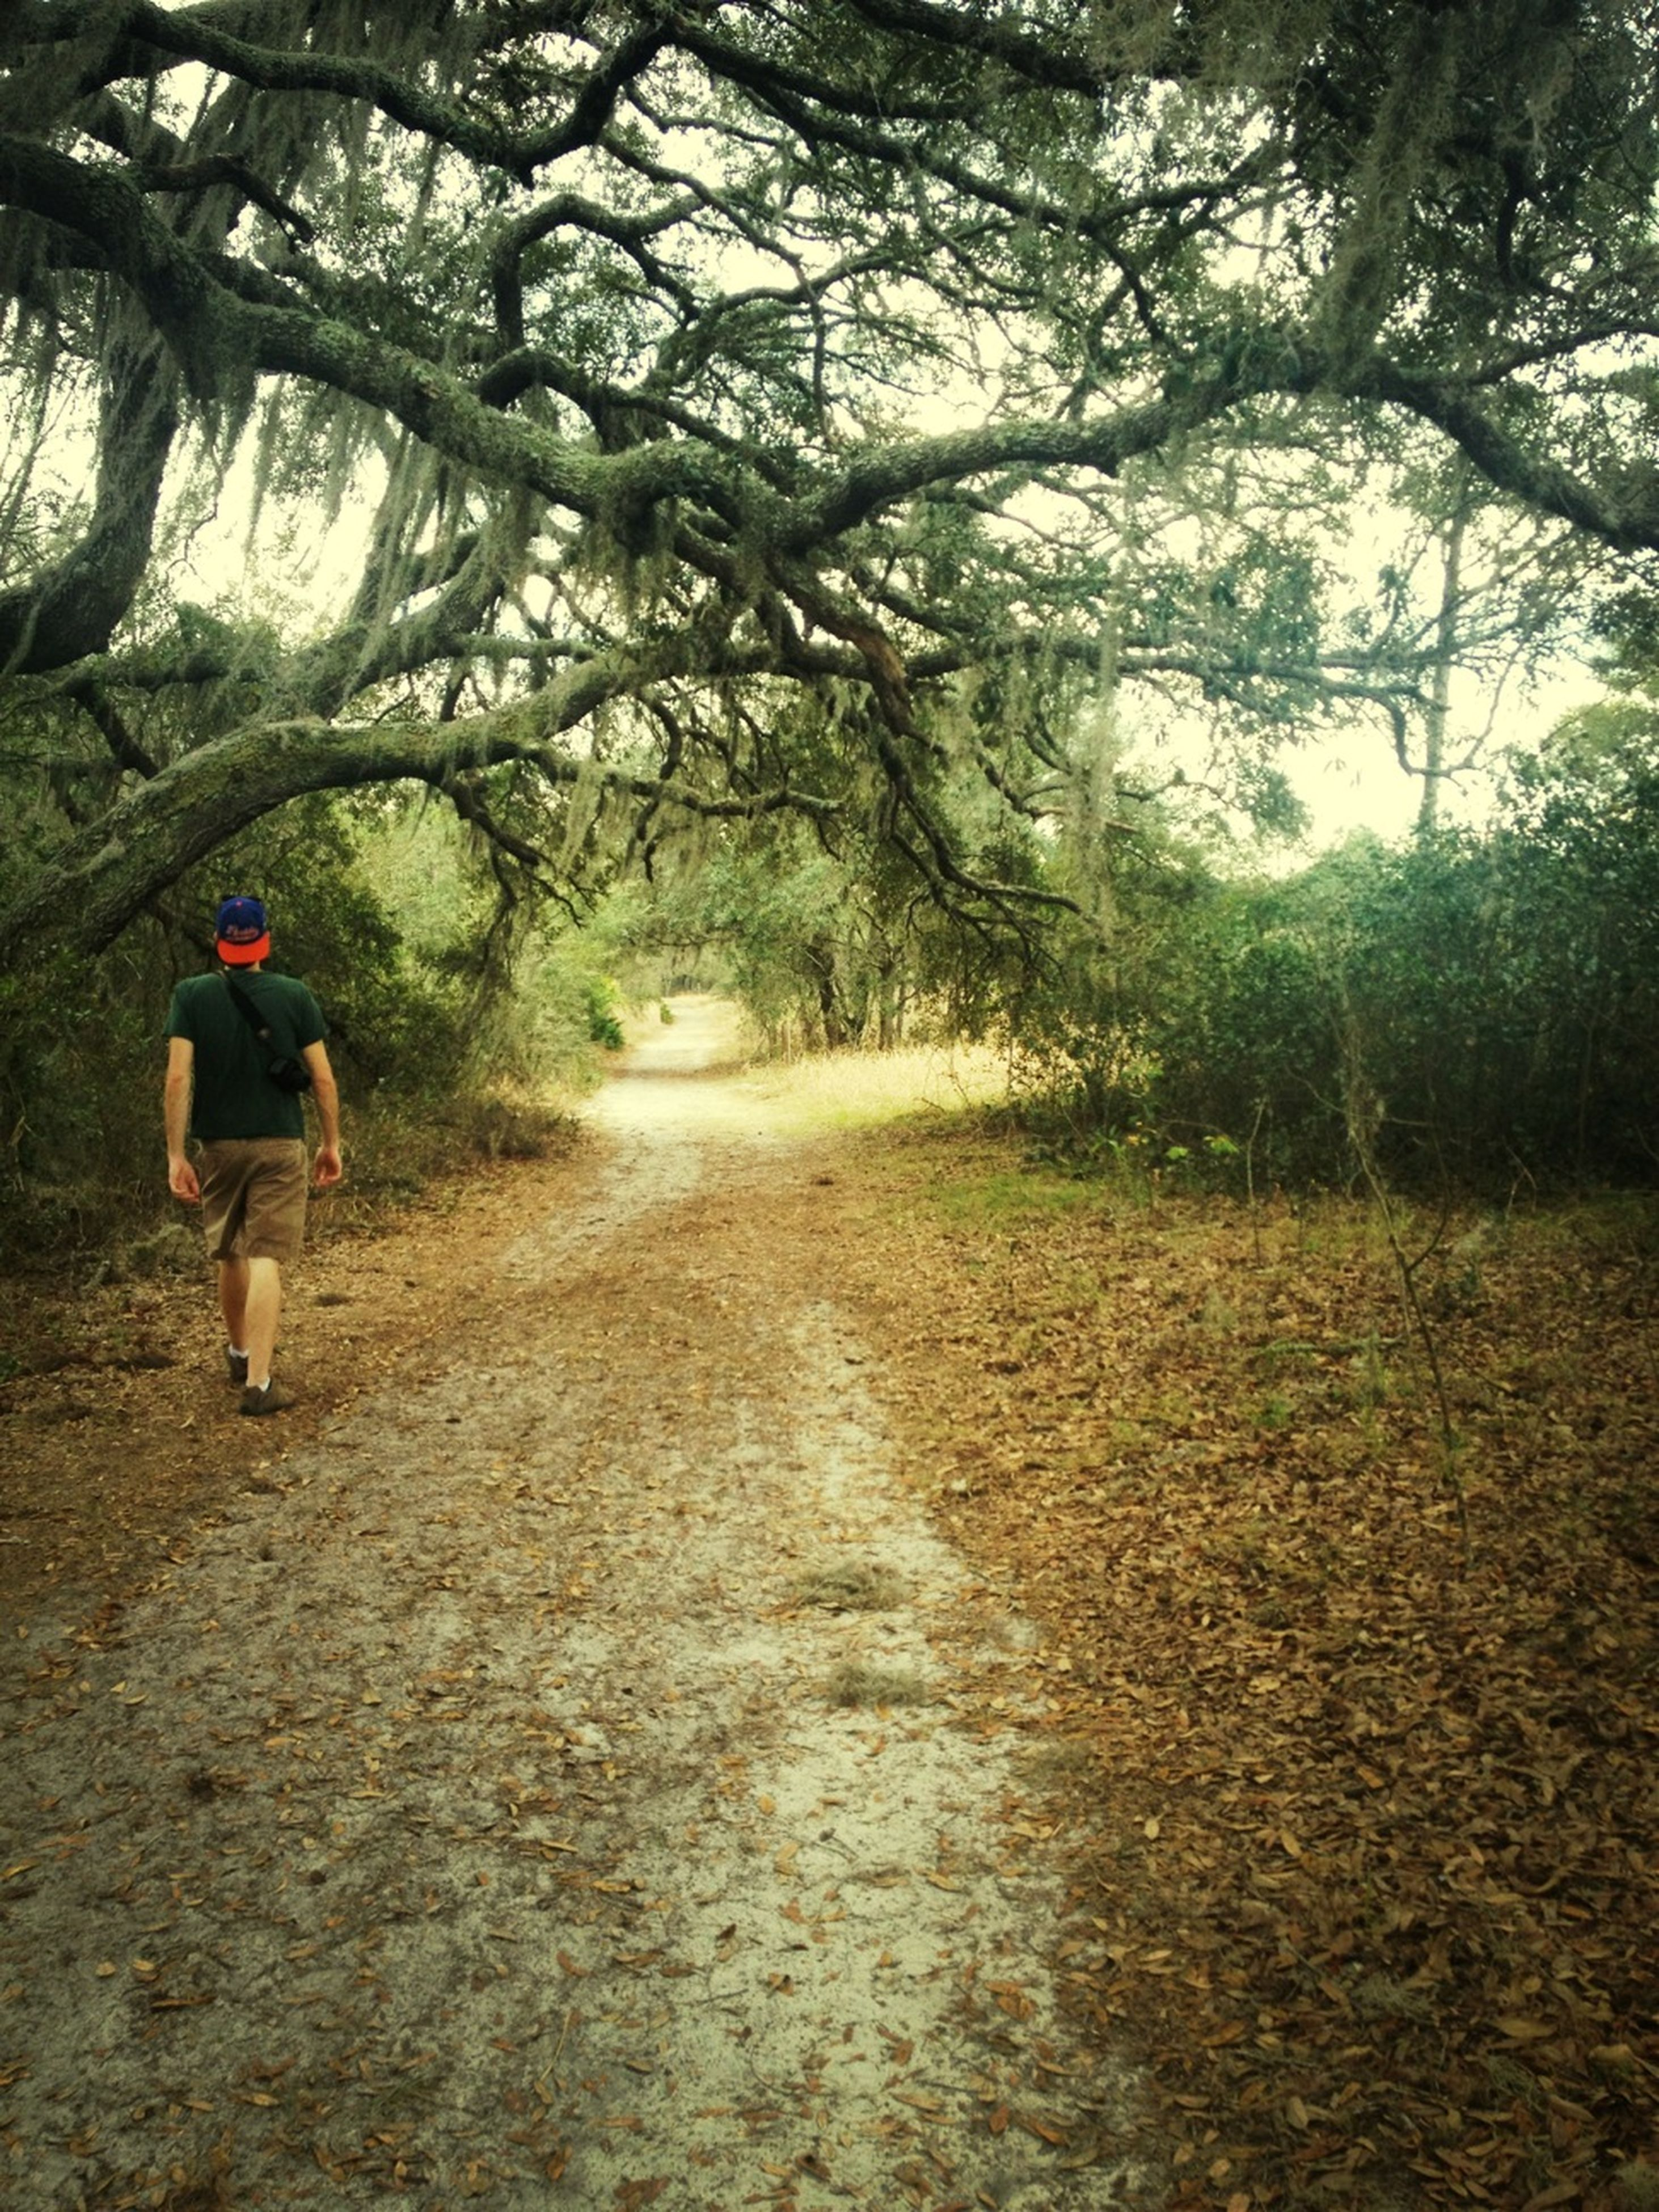 tree, lifestyles, the way forward, full length, leisure activity, rear view, walking, men, person, dirt road, casual clothing, nature, footpath, day, growth, tranquility, outdoors